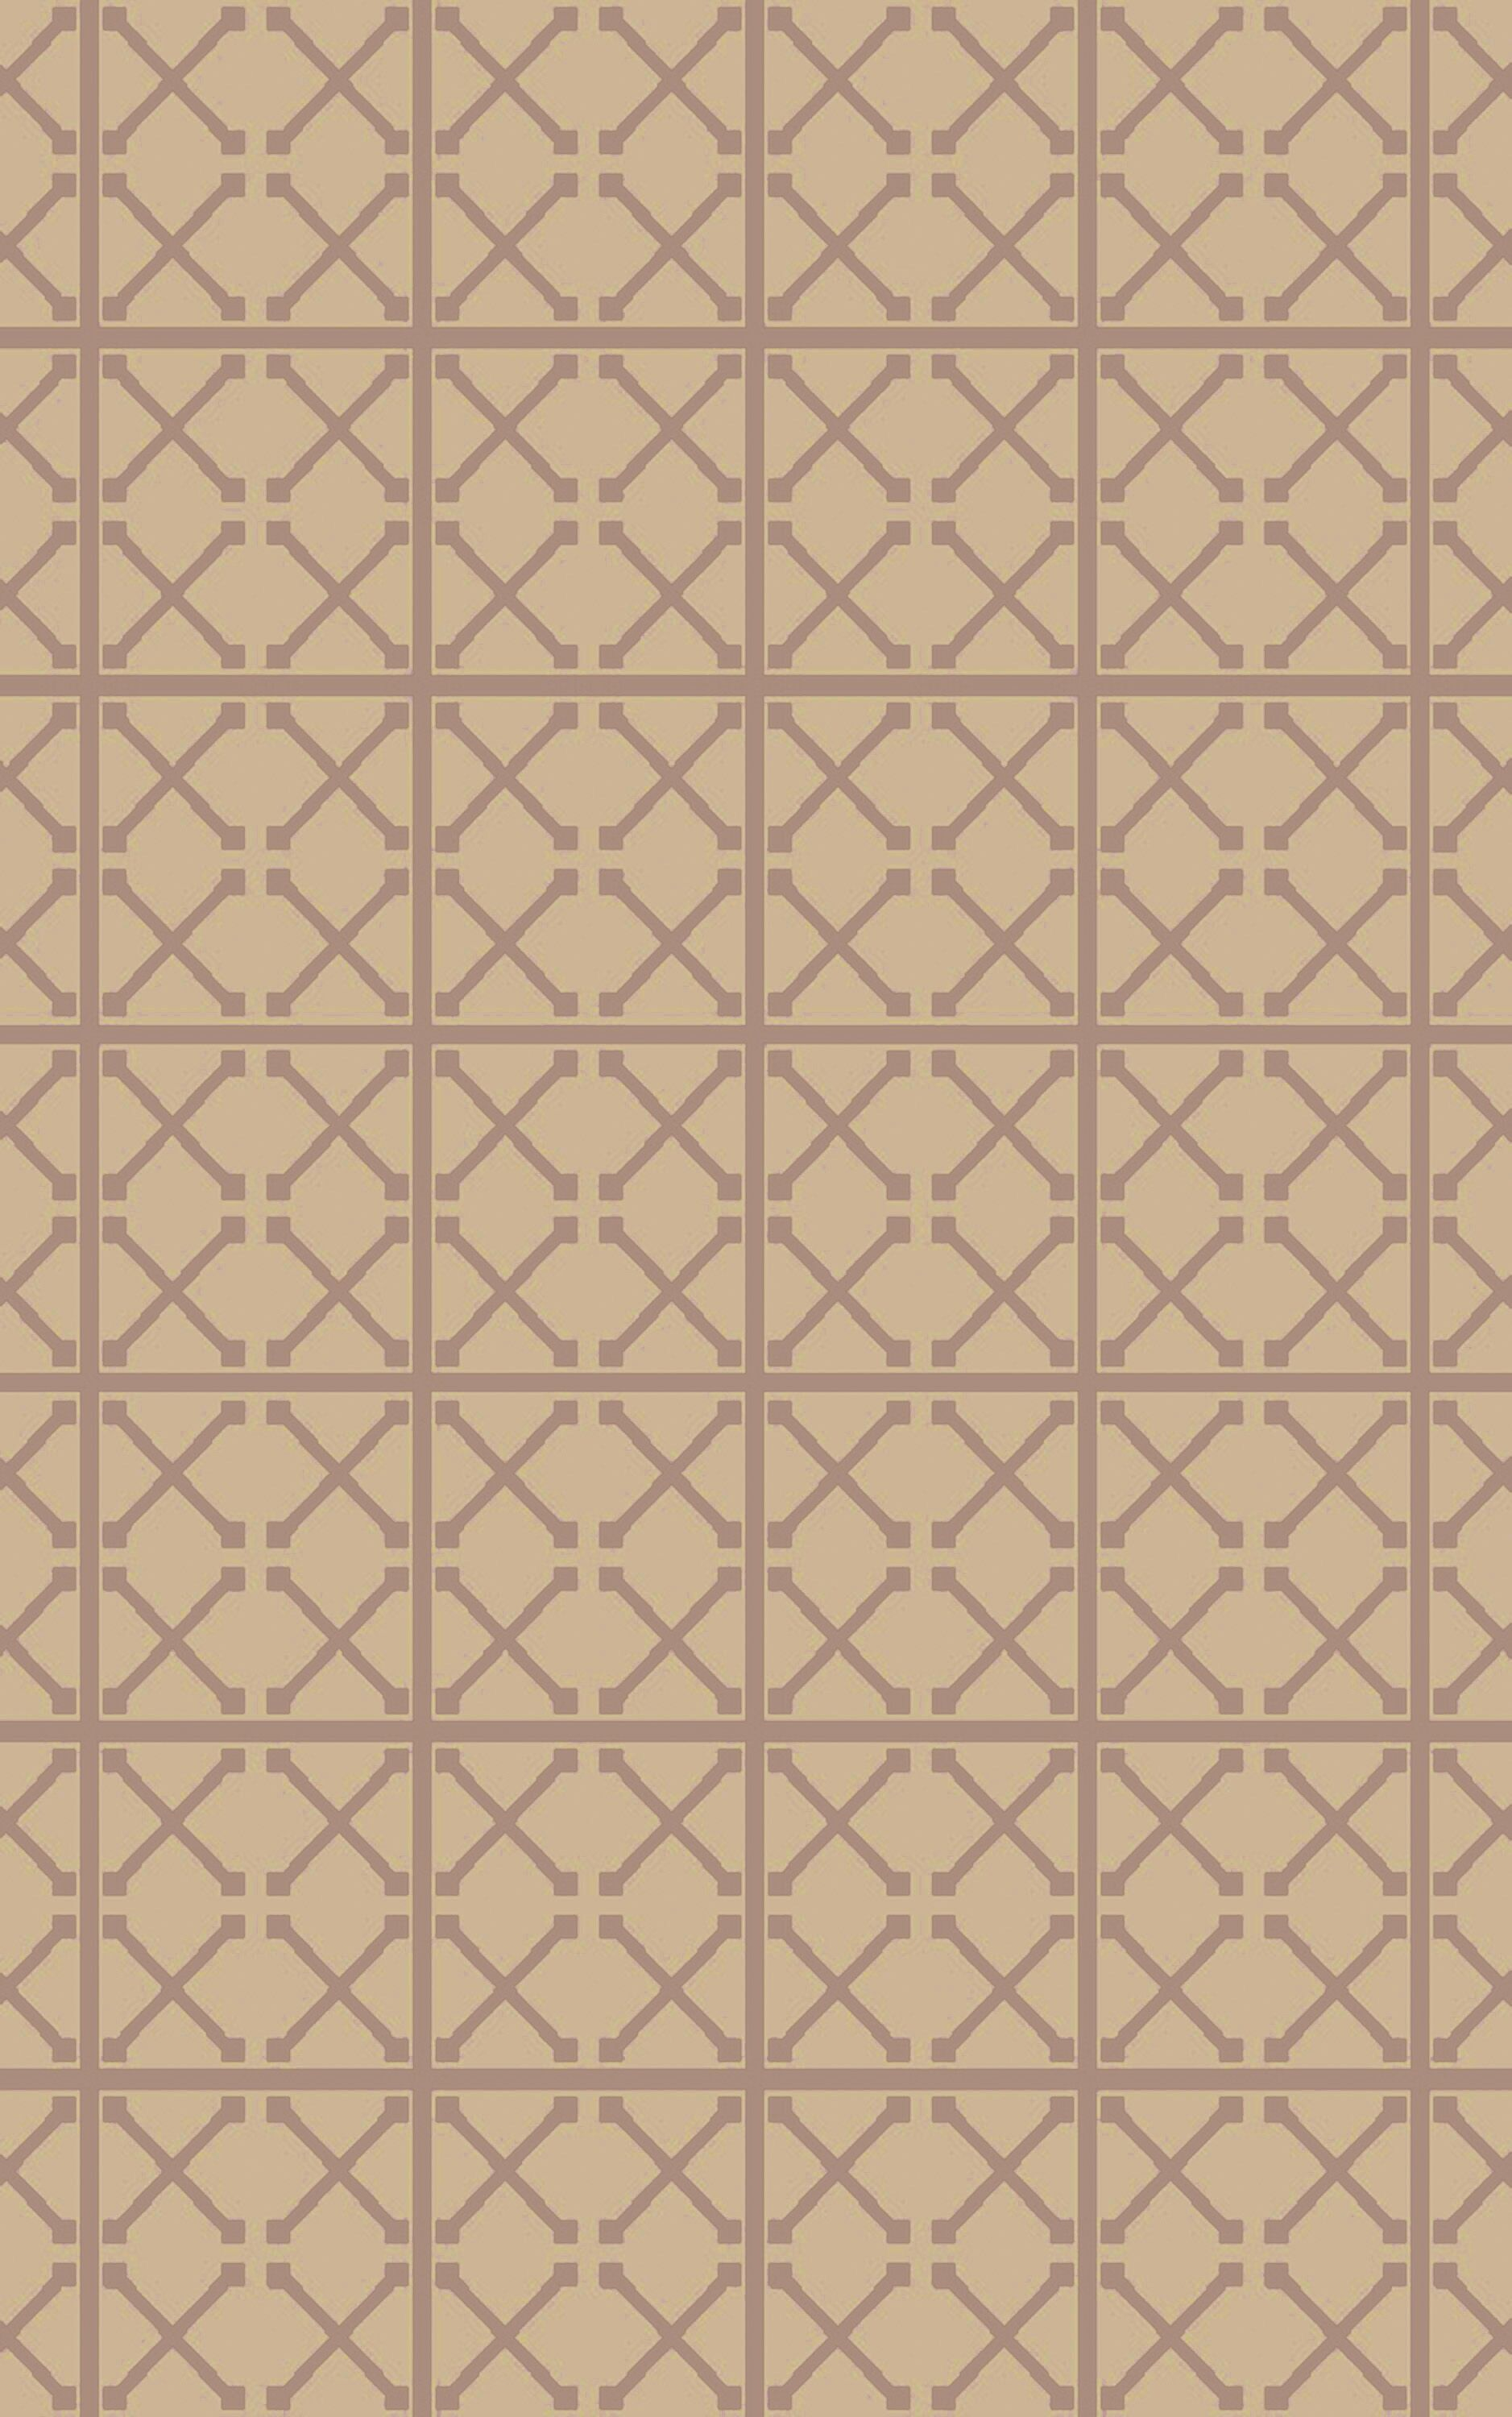 Donaghy Hand-Woven Beige/Mauve Area Rug Rug Size: Rectangle 8' x 10'